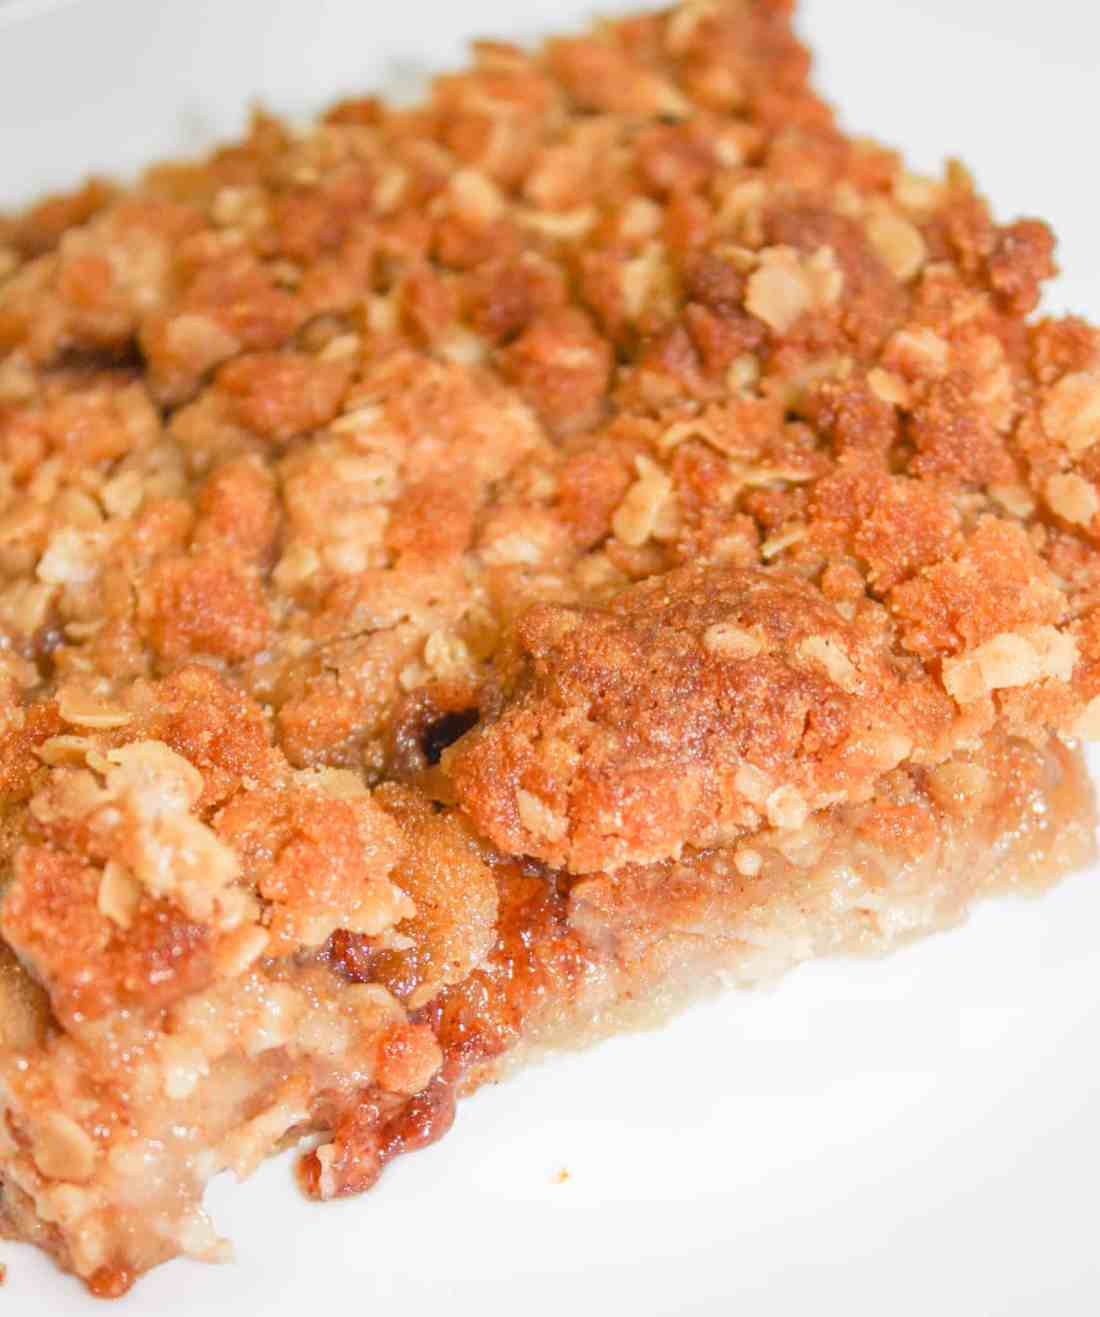 Apple Crisp is a classic fall dessert. This gluten free version will not disappoint and will be enjoyed by all whether or not they need to avoid gluten.